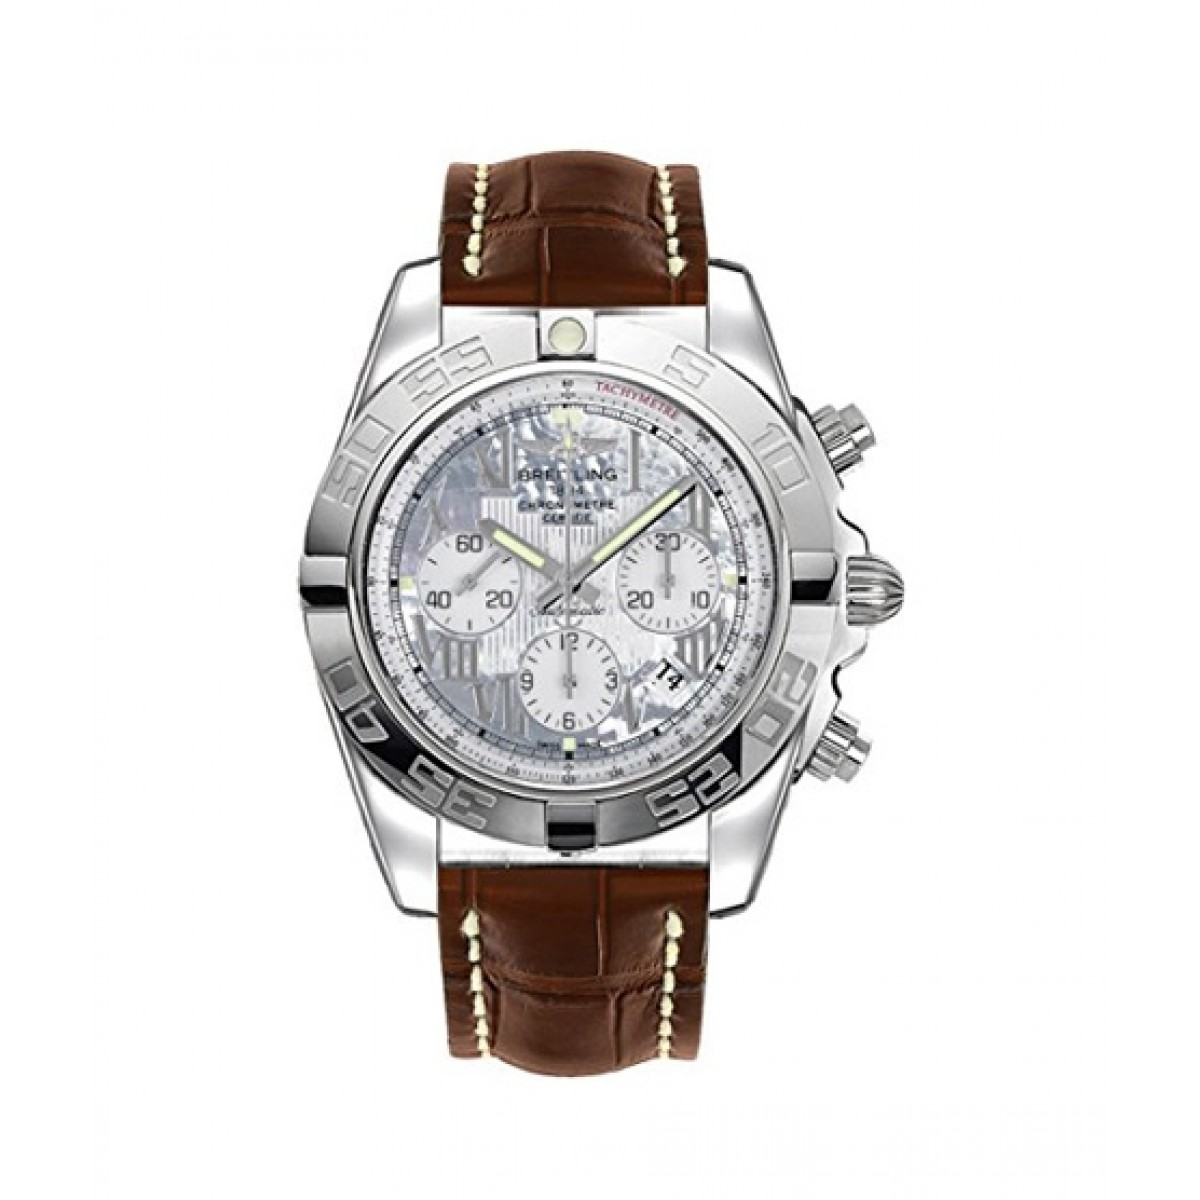 Breitling Chronomat 44 Men's Watch Brown (AB011012/A691-739P)